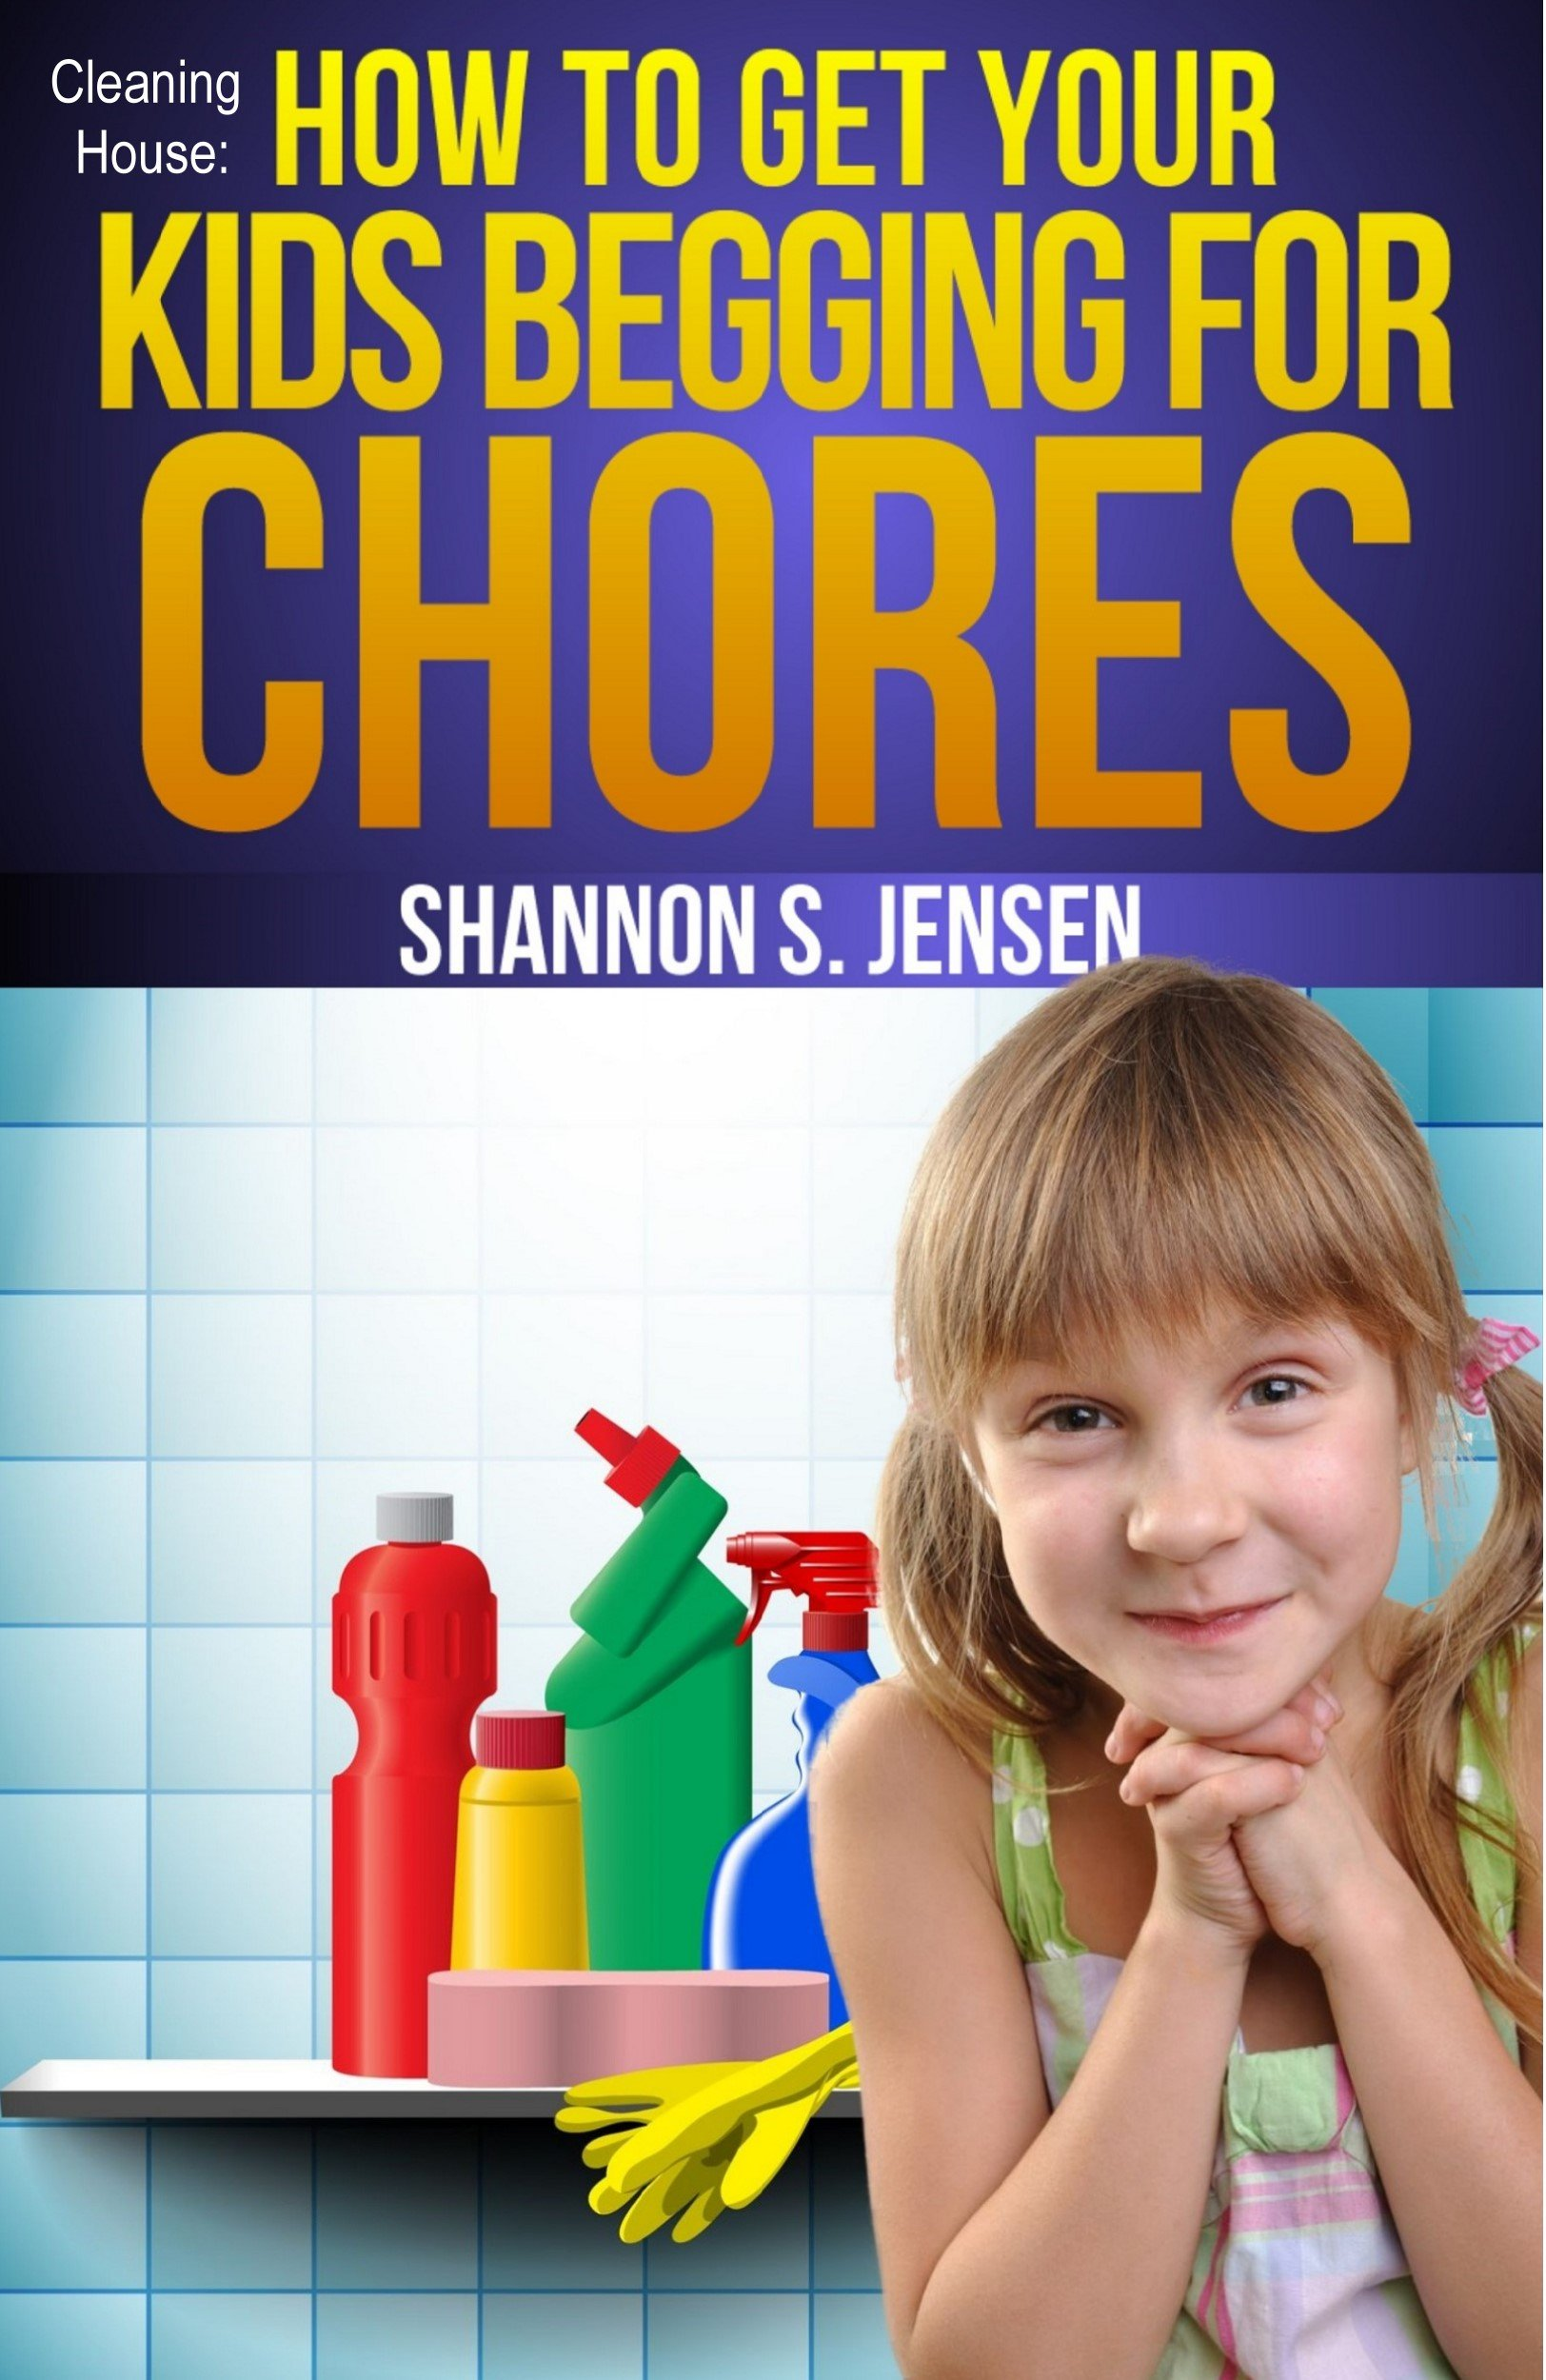 Get Your Kids Begging For Chores